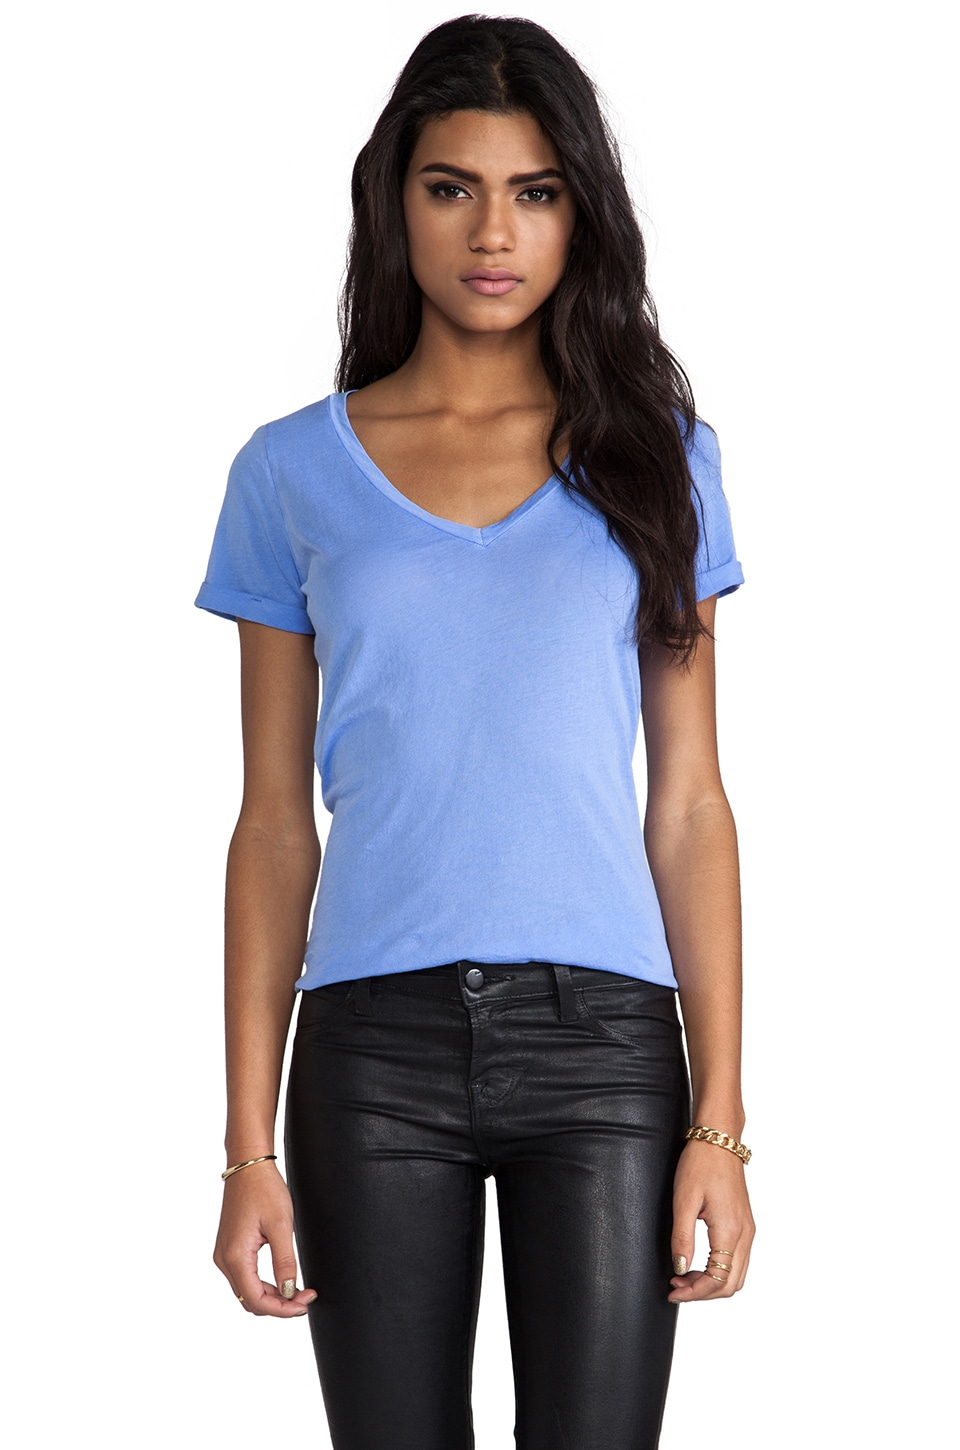 Splendid Vintage Whisper Tee in Blue Reef